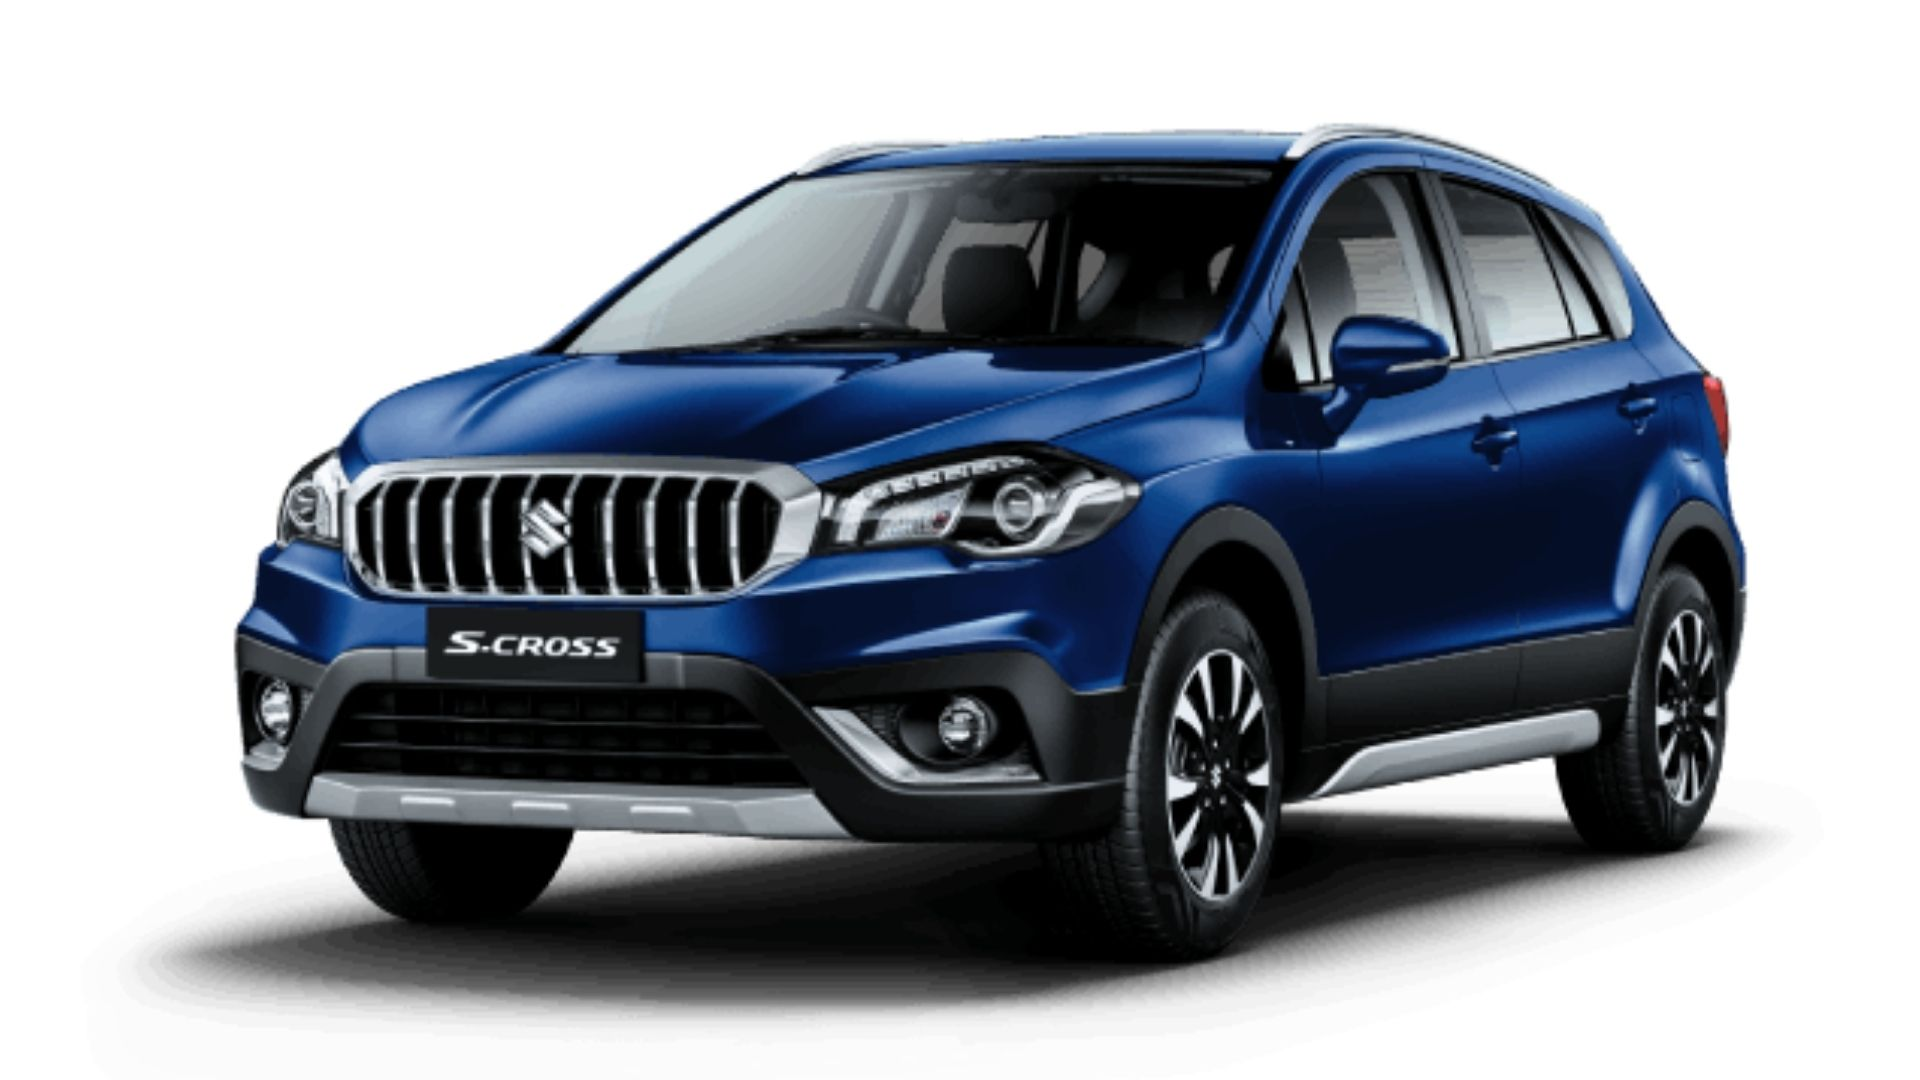 2020 Maruti Suzuki S-Cross BS6 Launched in India at Rs 8.39 lakh